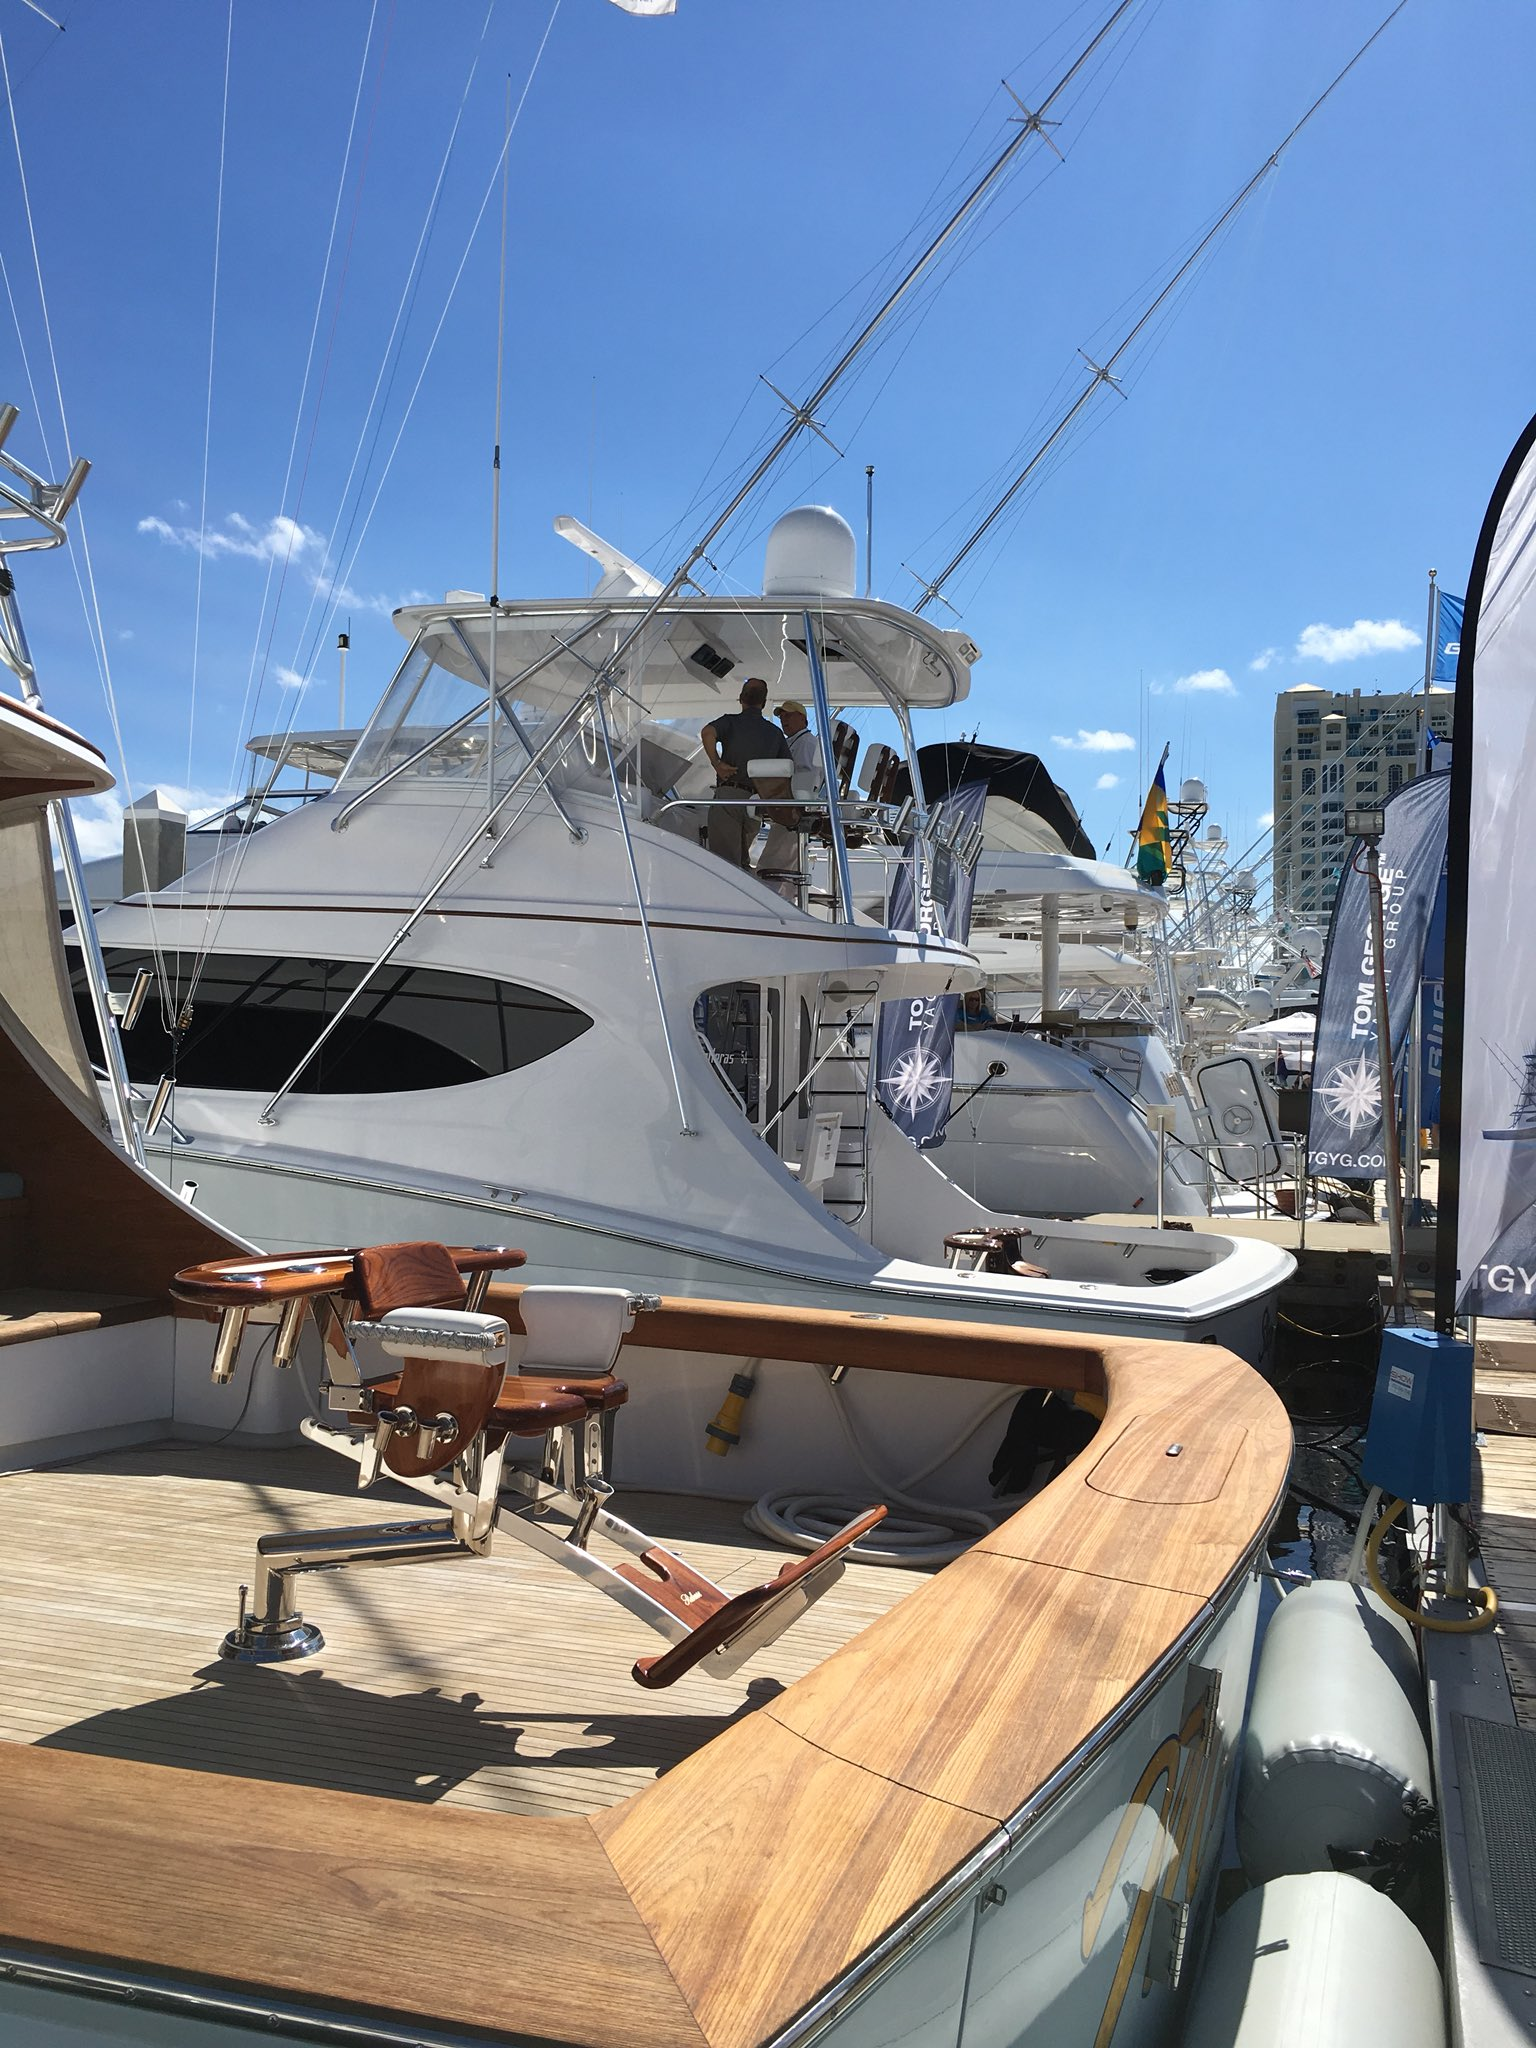 Are you ready for some yacht shots? We'll be bringing you updates from #FLIBS2017! Stay tuned. https://t.co/3zgGwQjWzq